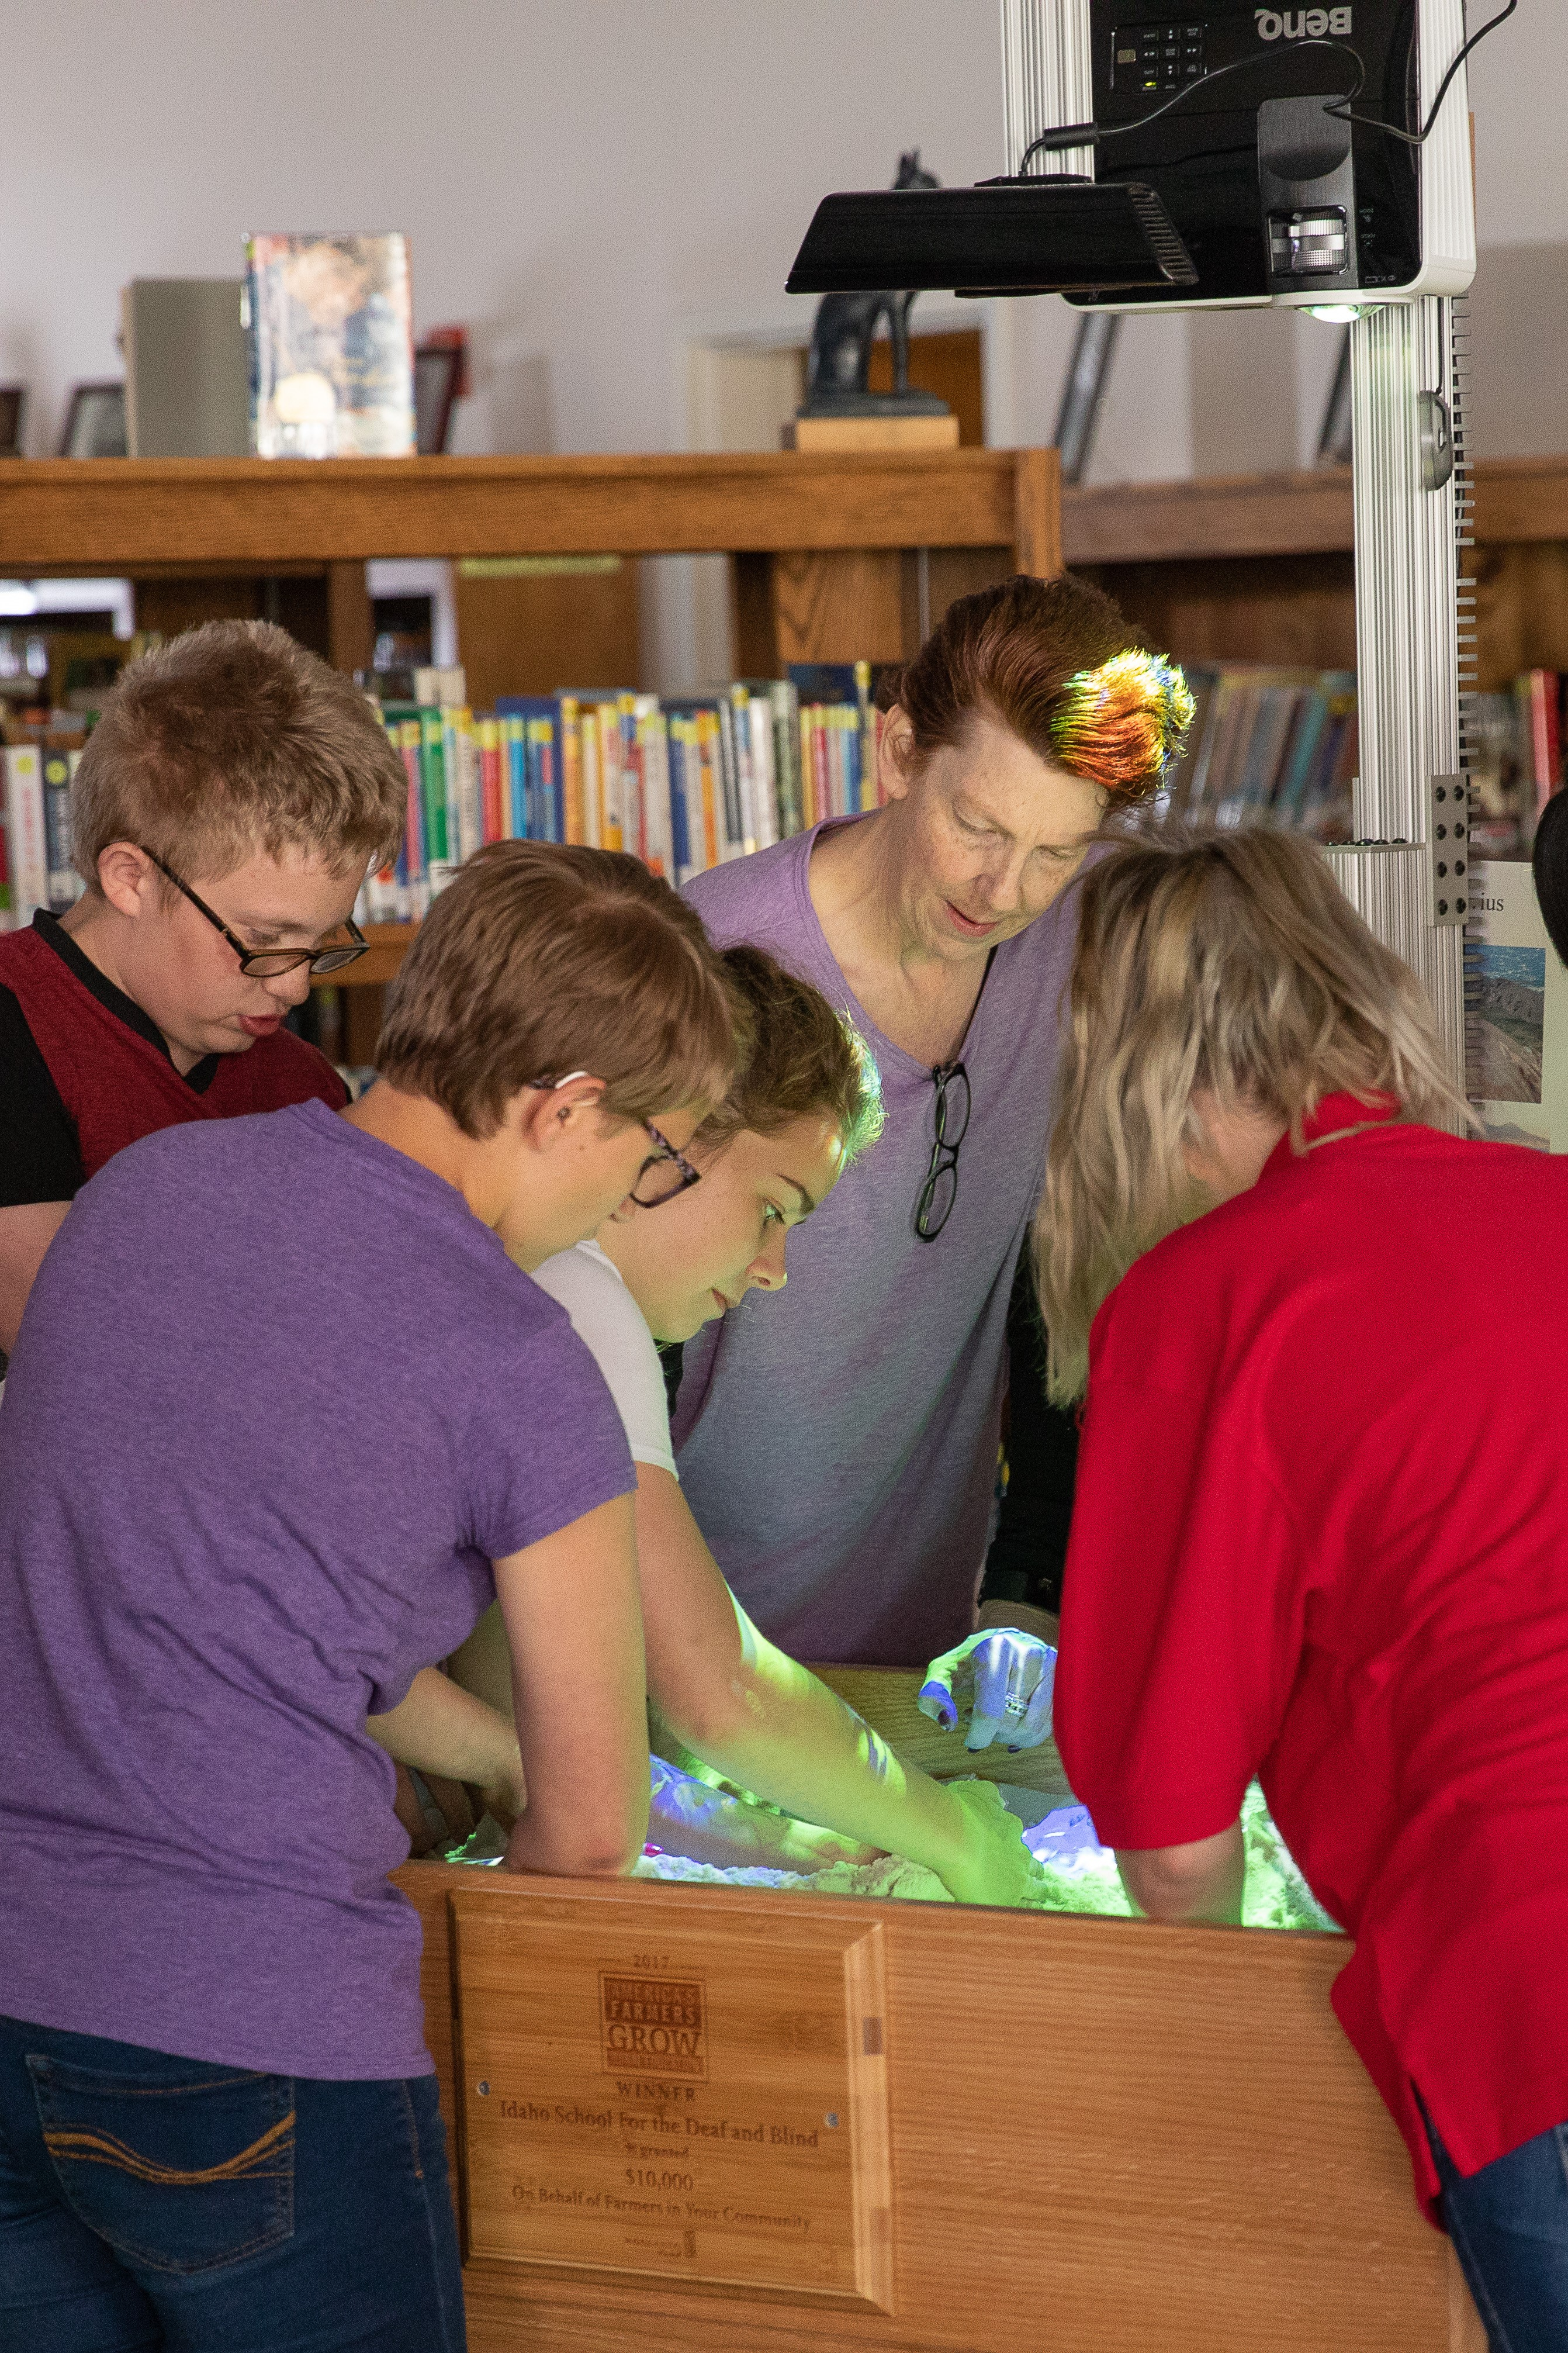 students explore with the augmented reality sandbox in the library